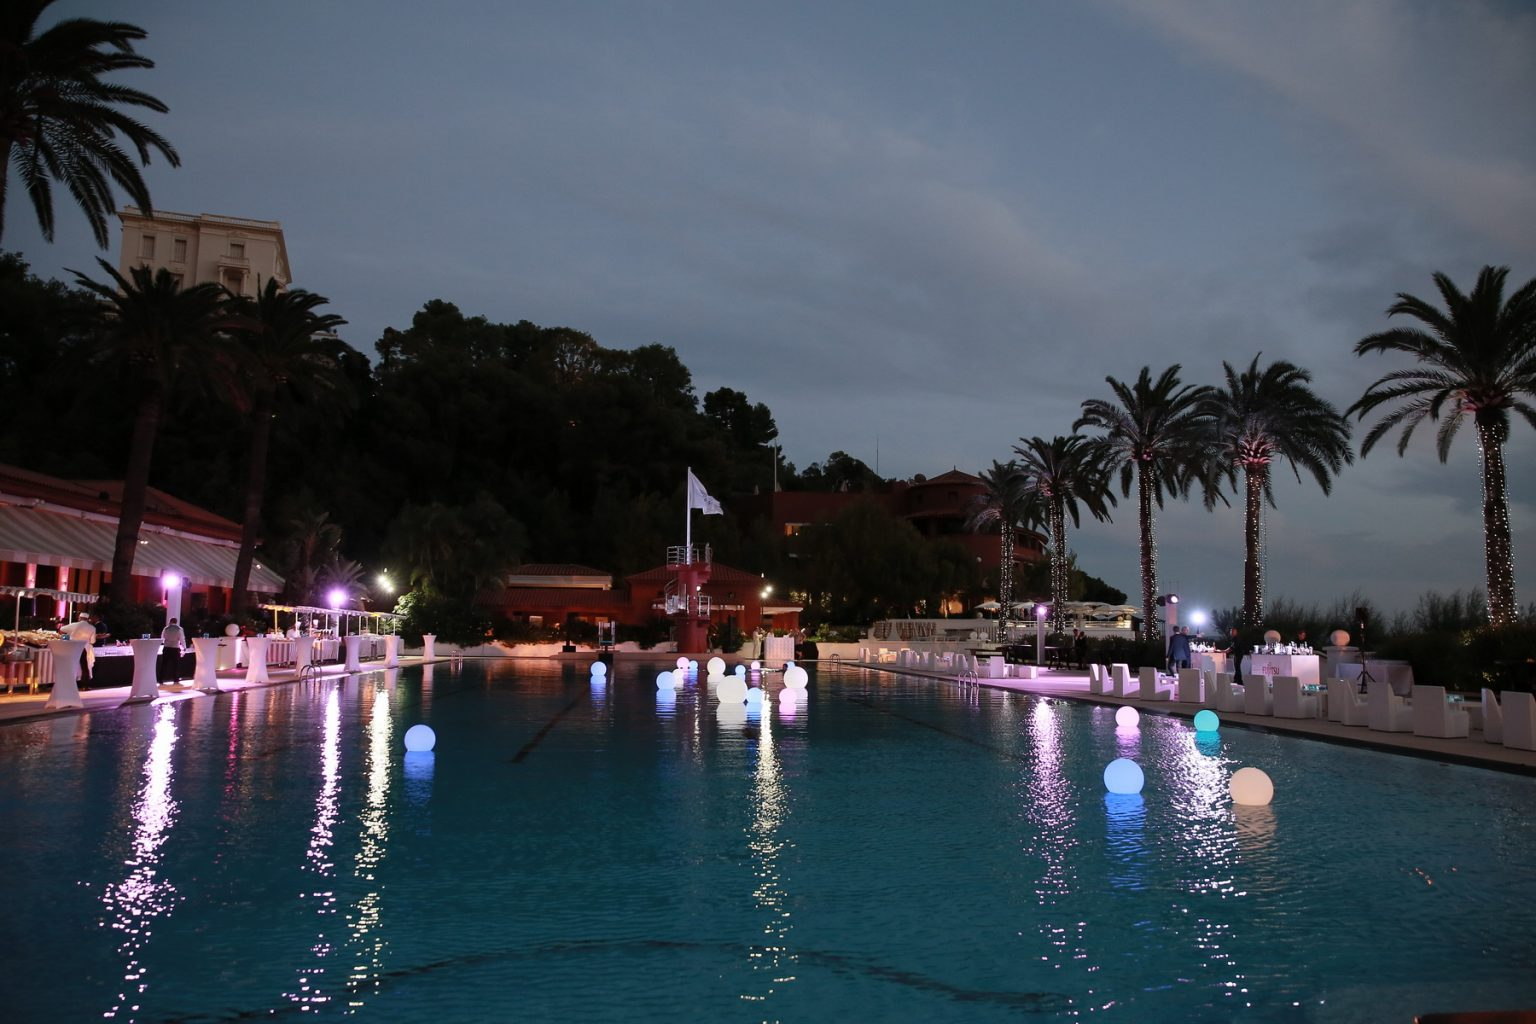 Le Deck Monte Carlo Pool Evening 15 - Le Deck Monte Carlo Pool Evening